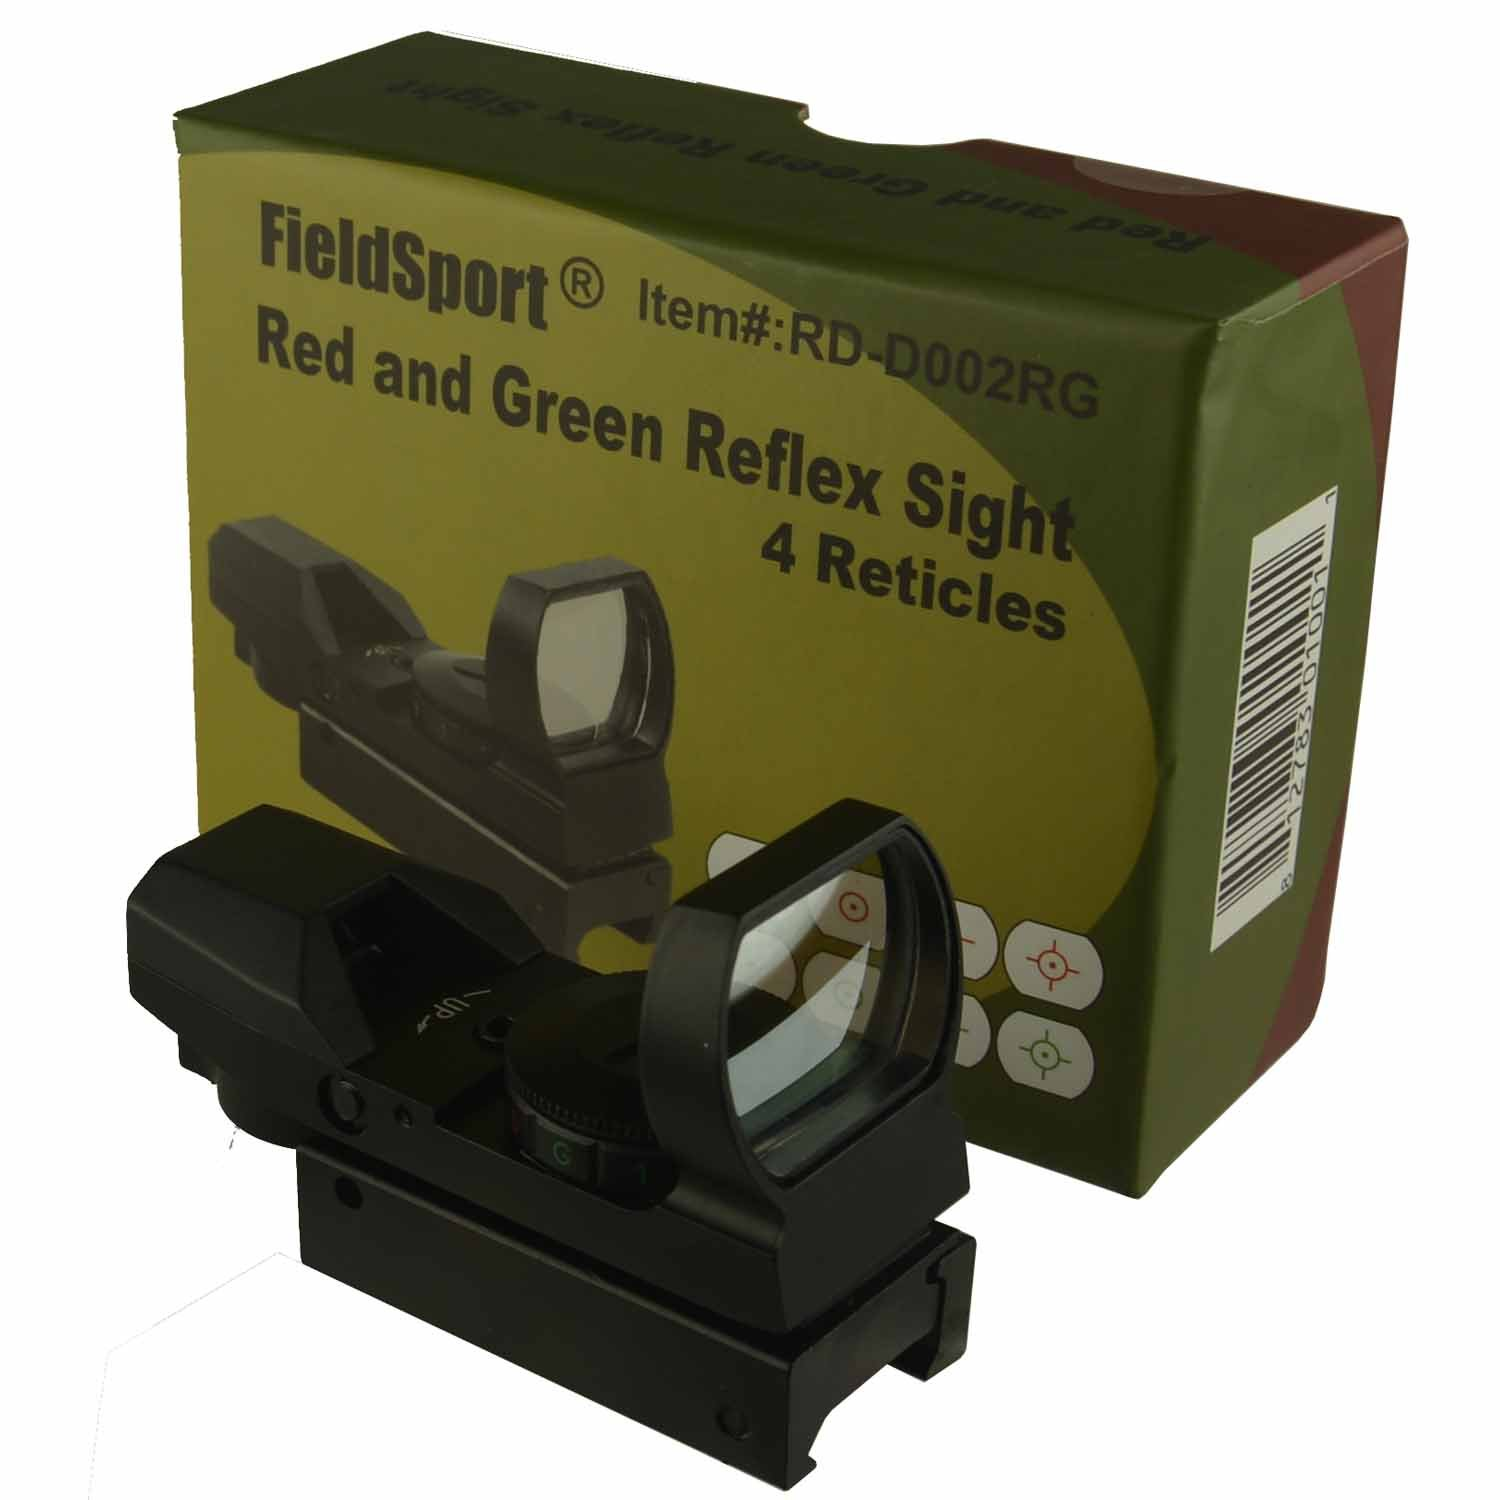 Field Sport Red and Green Reflex Sight with 4 Reticles by Field Sport